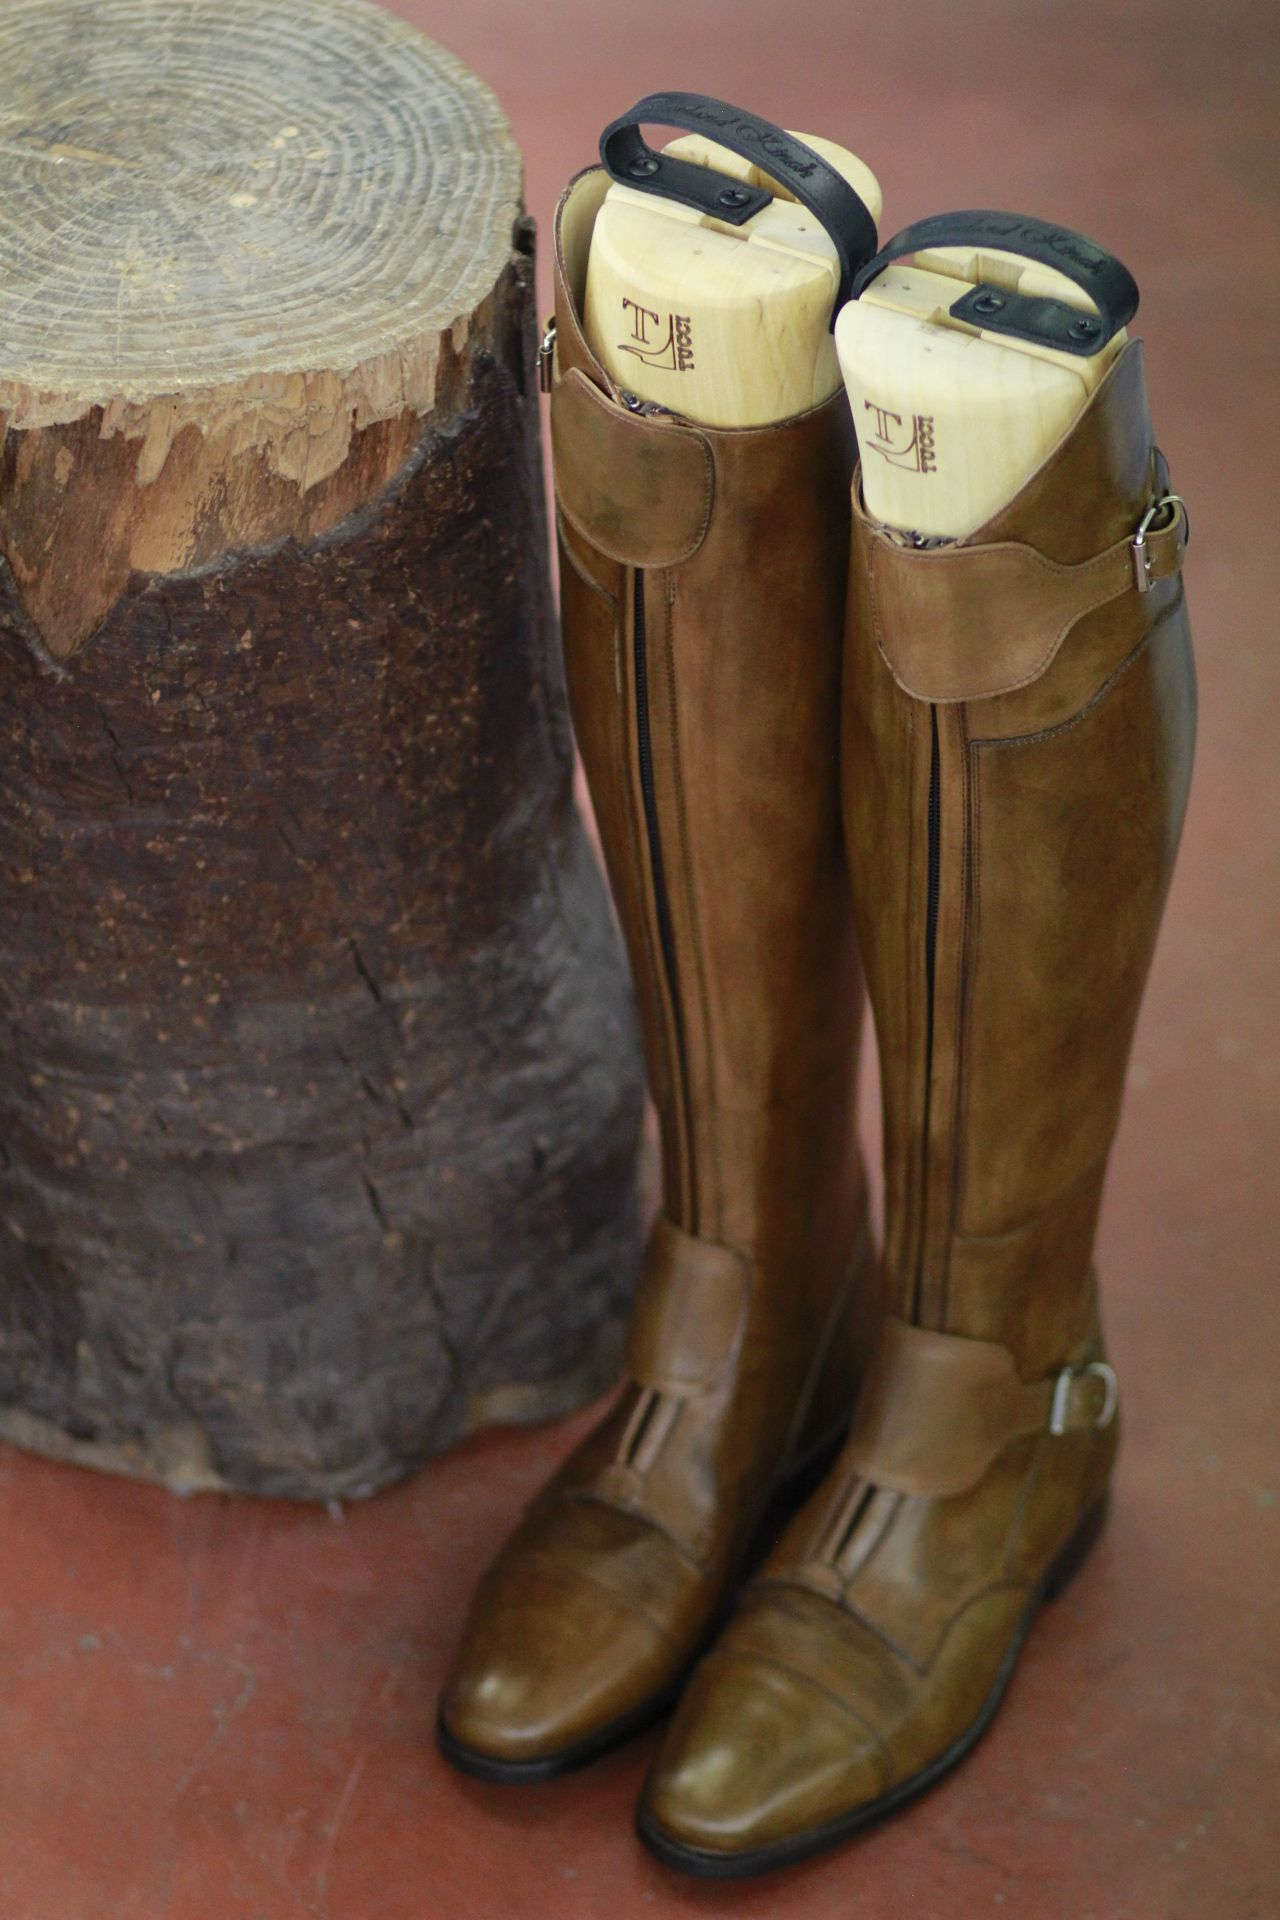 d02ae757e42c Polo riding boots by Franco Tucci with hand-rubbed vintage leather effect.  Italian design made in Italy. Made to measure custom boots with monogrammed  wood ...